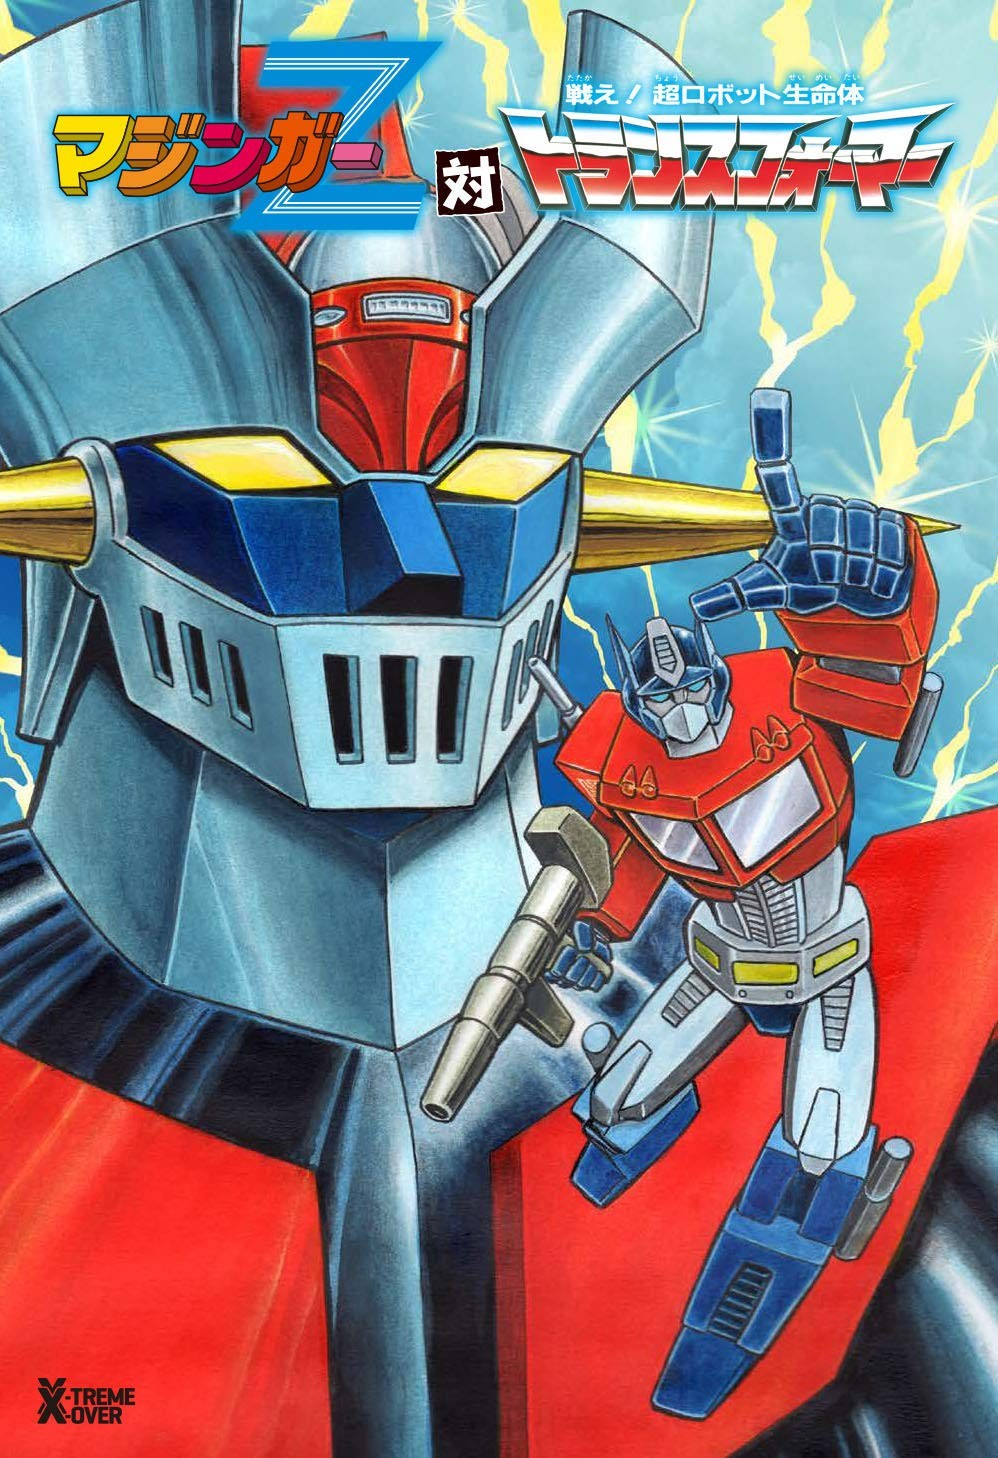 Transformers News: First look at Mazinger Z vs Transformers Go Nagai cover plus Tsuyoshi Nonaka Amazon variant